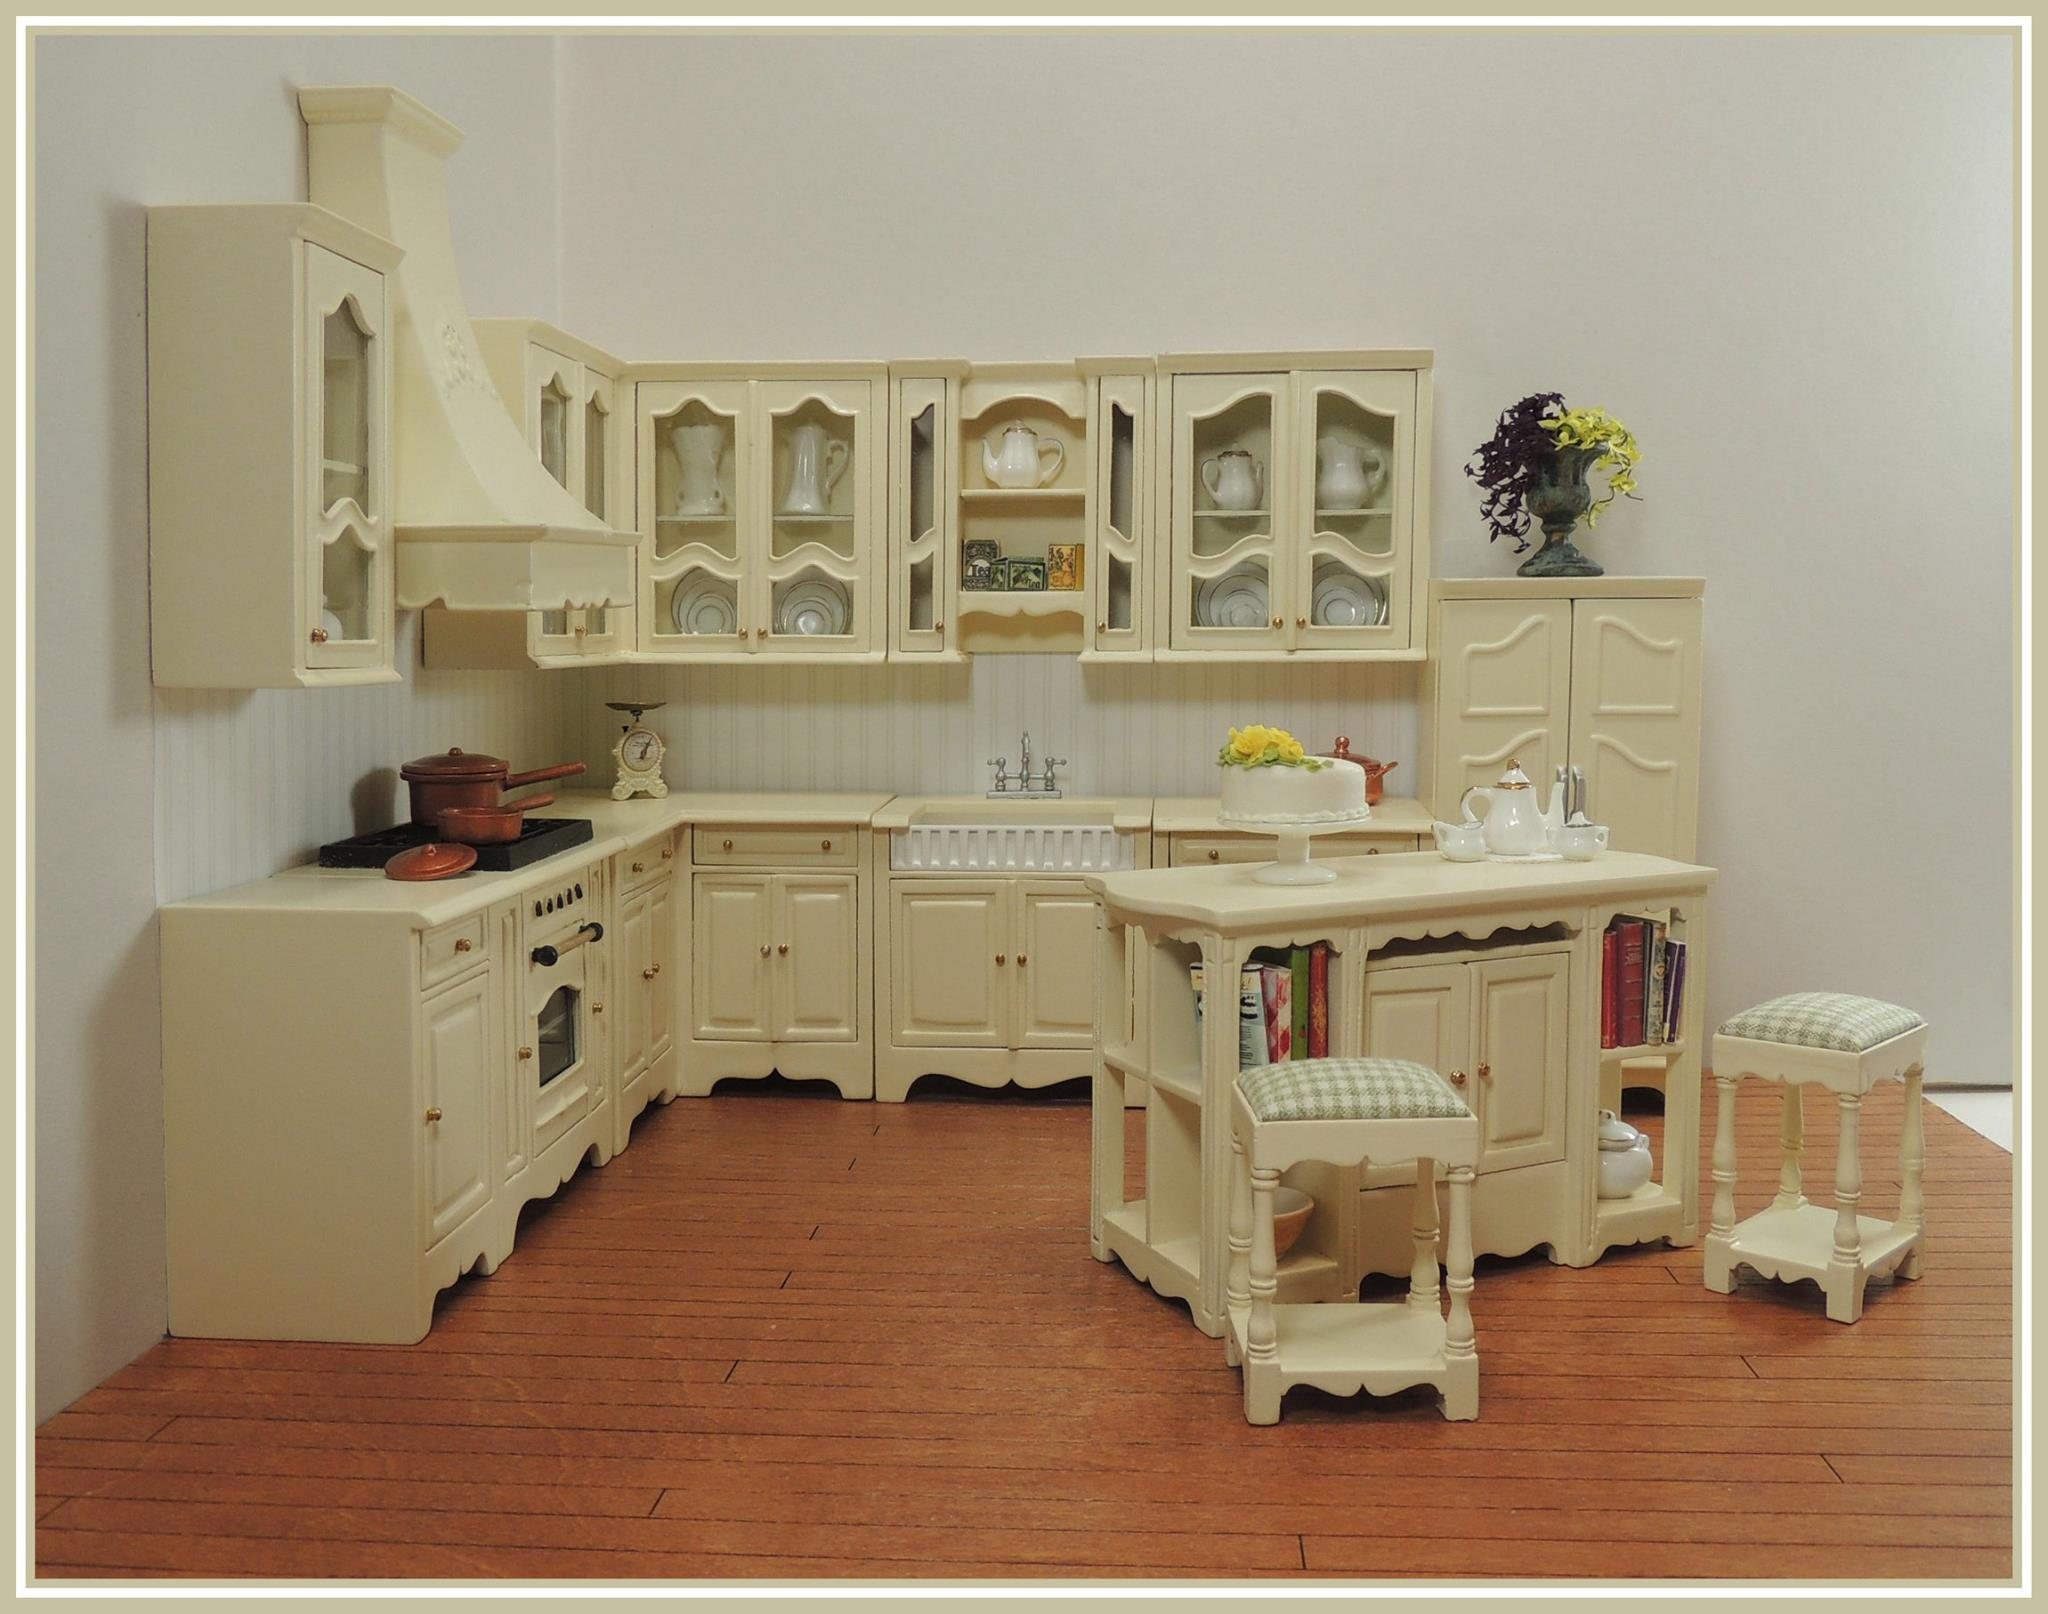 click to enlarge - Dollhouse Kitchen